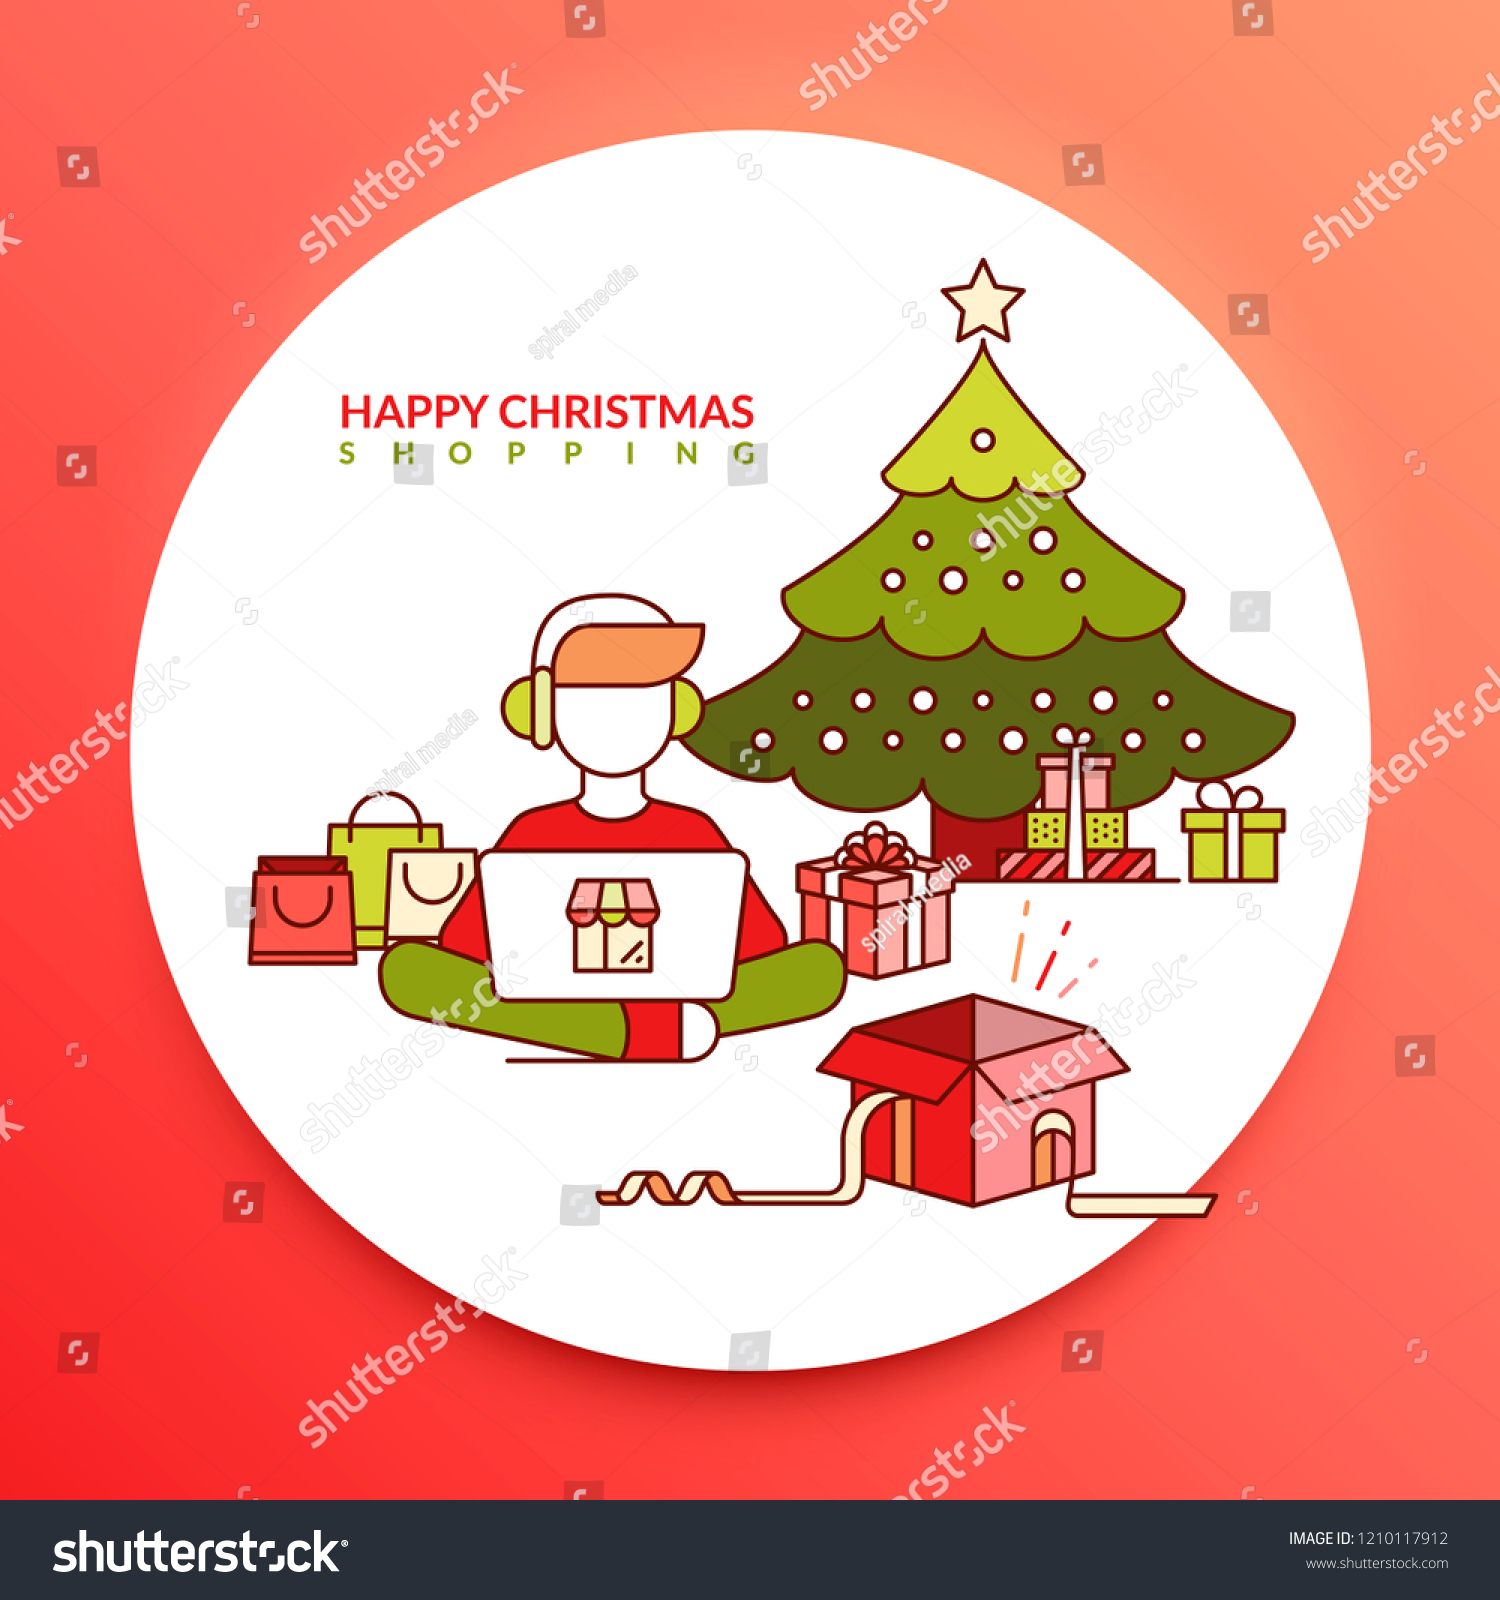 Happy Christmas Shopping Boy Shopping Online Stock Vector Royalty Free 1210117912